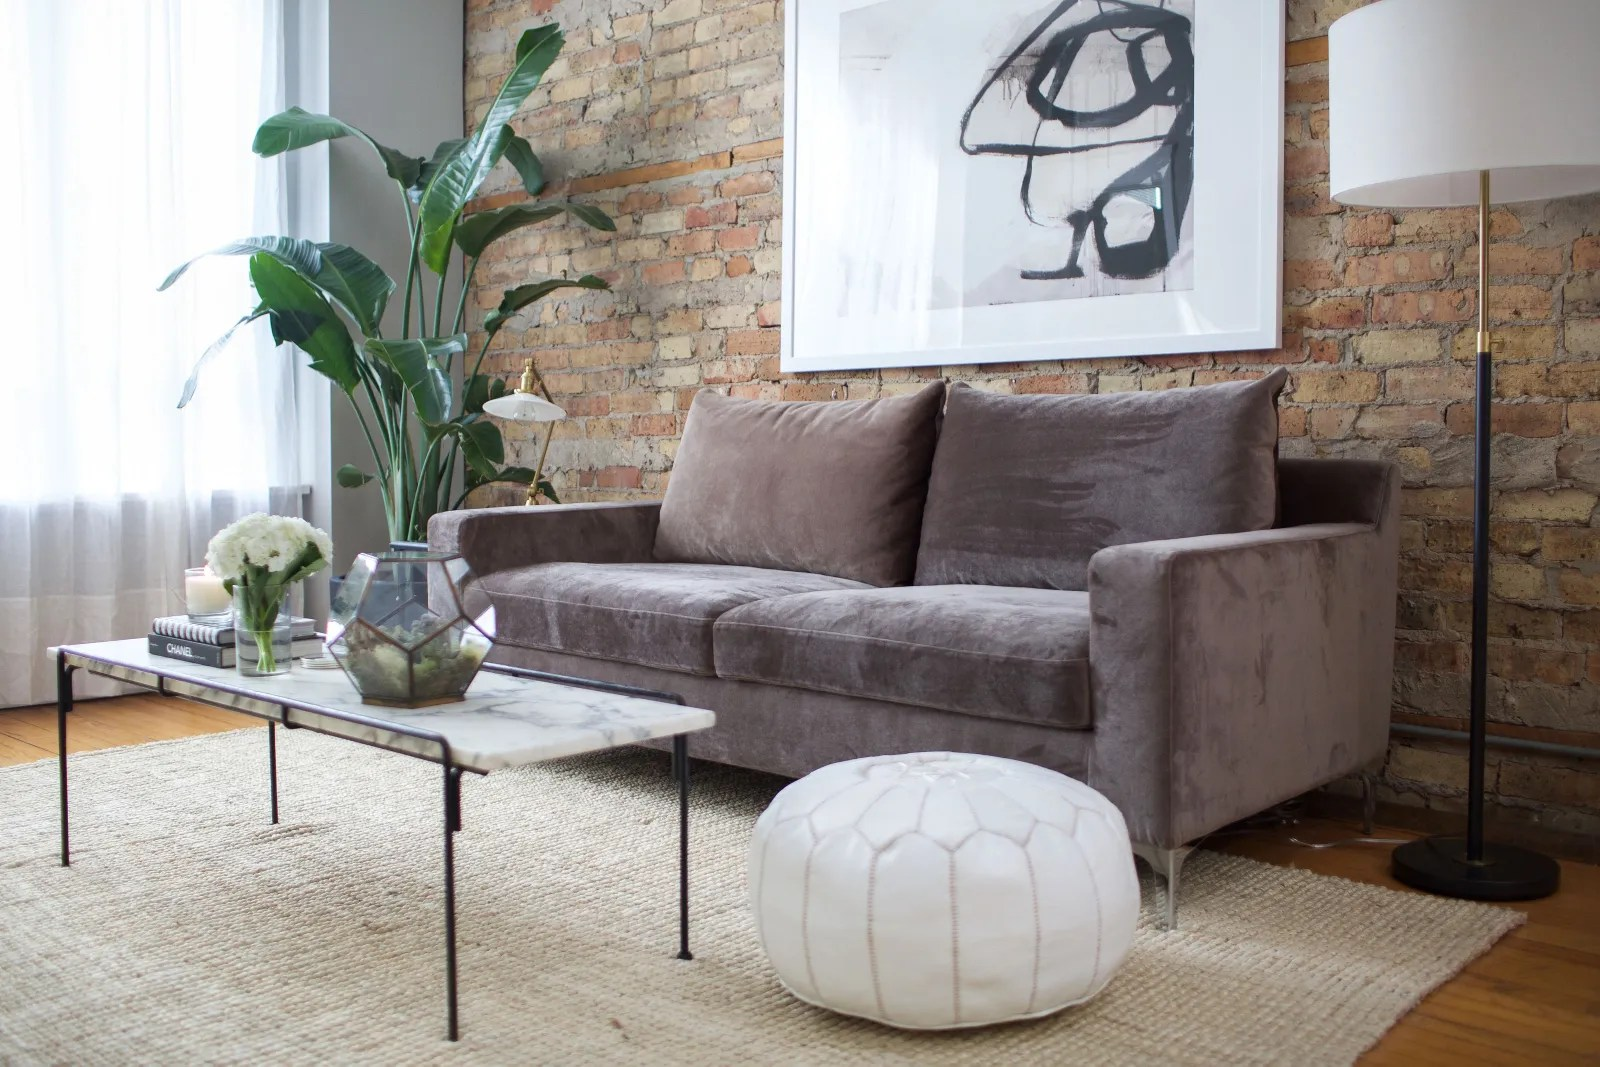 Sofa On Online How To Shop For A Sofa Online Tips And Tricks From A Furniture